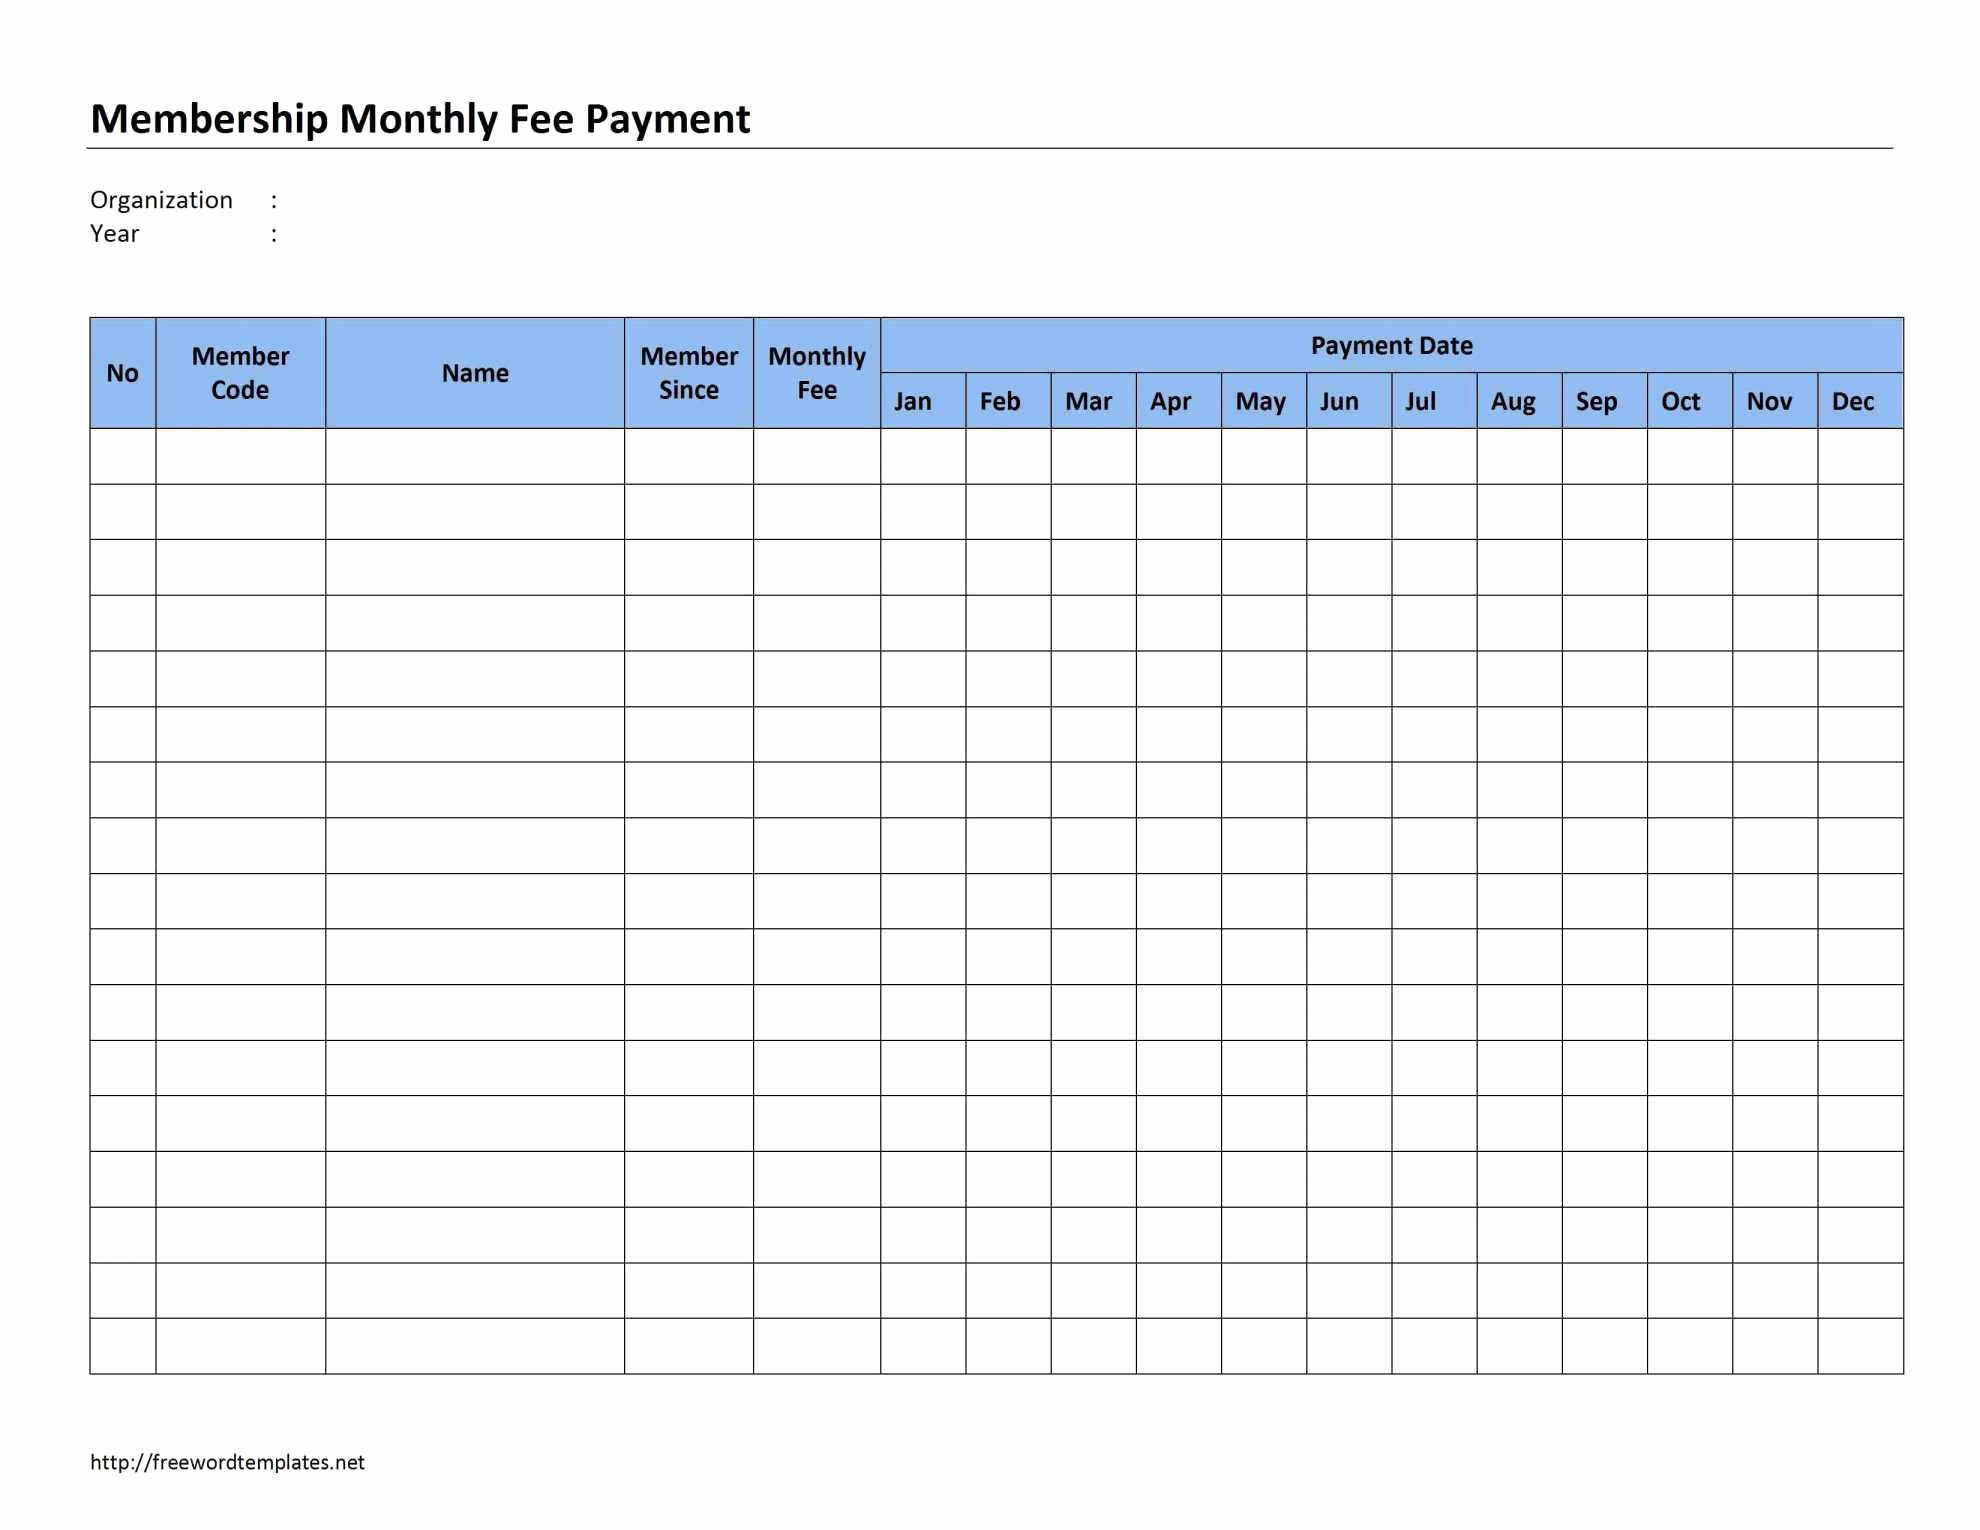 Month Pro Forma Balance Sheet Examples on goodwill debit credit, fill template, excel template pd, income statement, just sales cogs, example for pharmacy, for trucking company, for instagram, for trucking company sample,